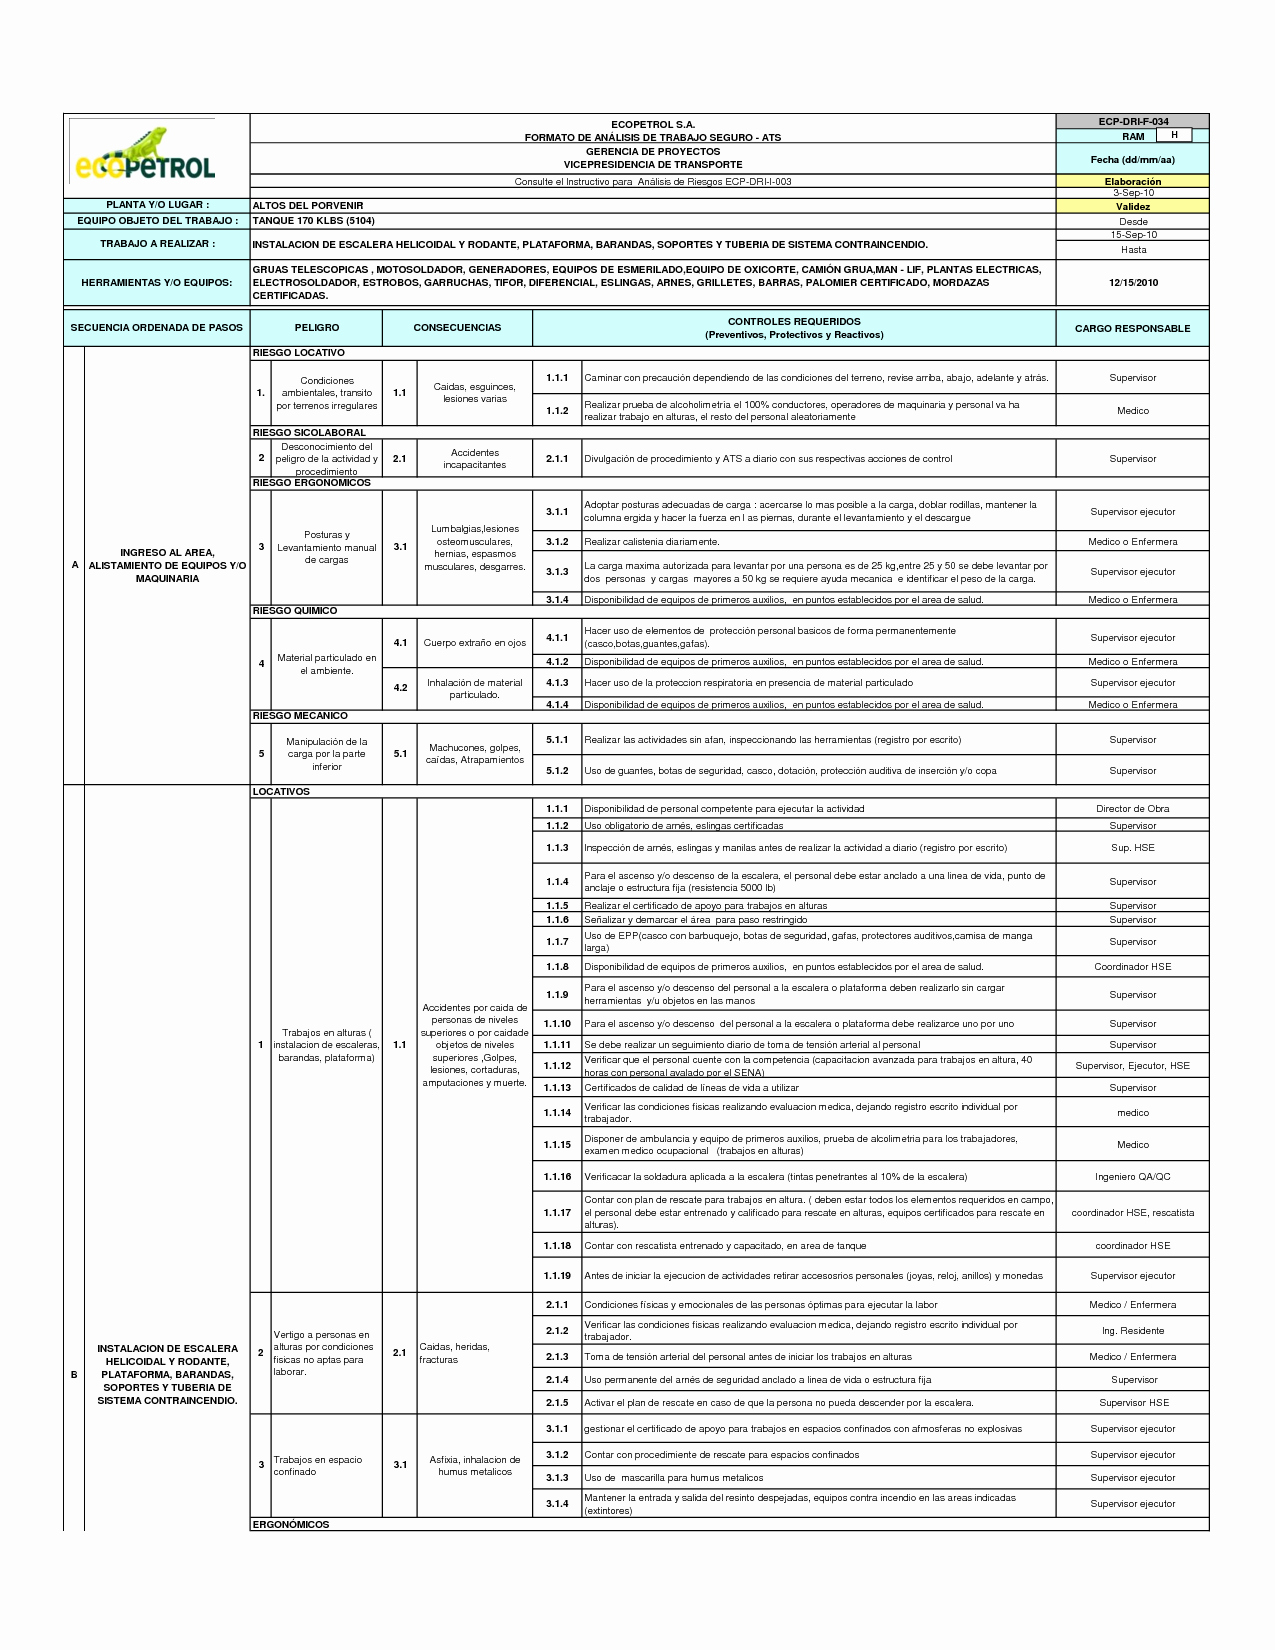 Consultant Scope Of Work Template Awesome Consultant Scope Of Work Template